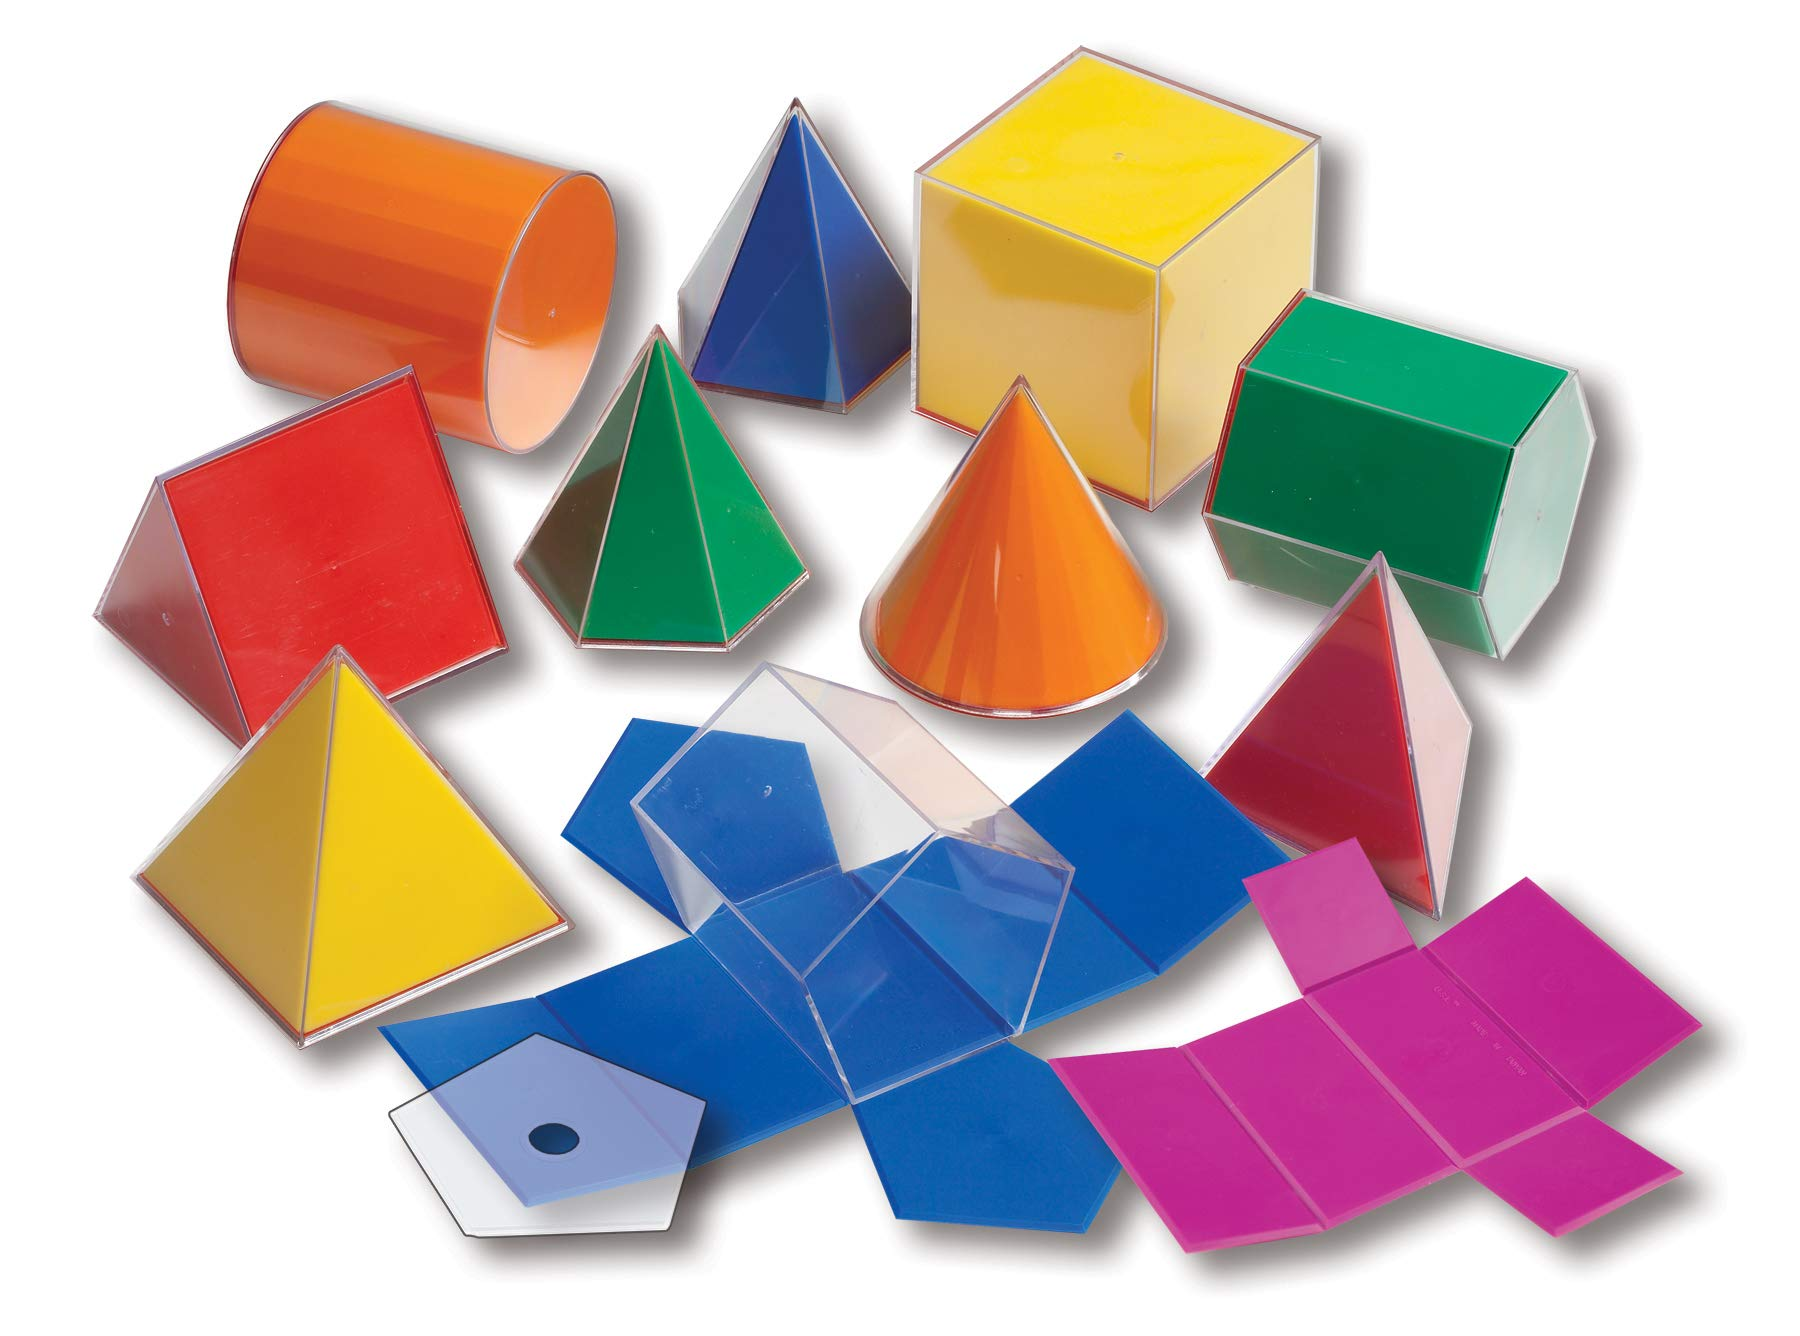 Learning Advantage Folding 3D GeoFigures - Set of 11 Multicolored Shapes - Includes 2D Nets and Activity Guide - Early Math Manipulative and Geometry for Kids by Learning Advantage